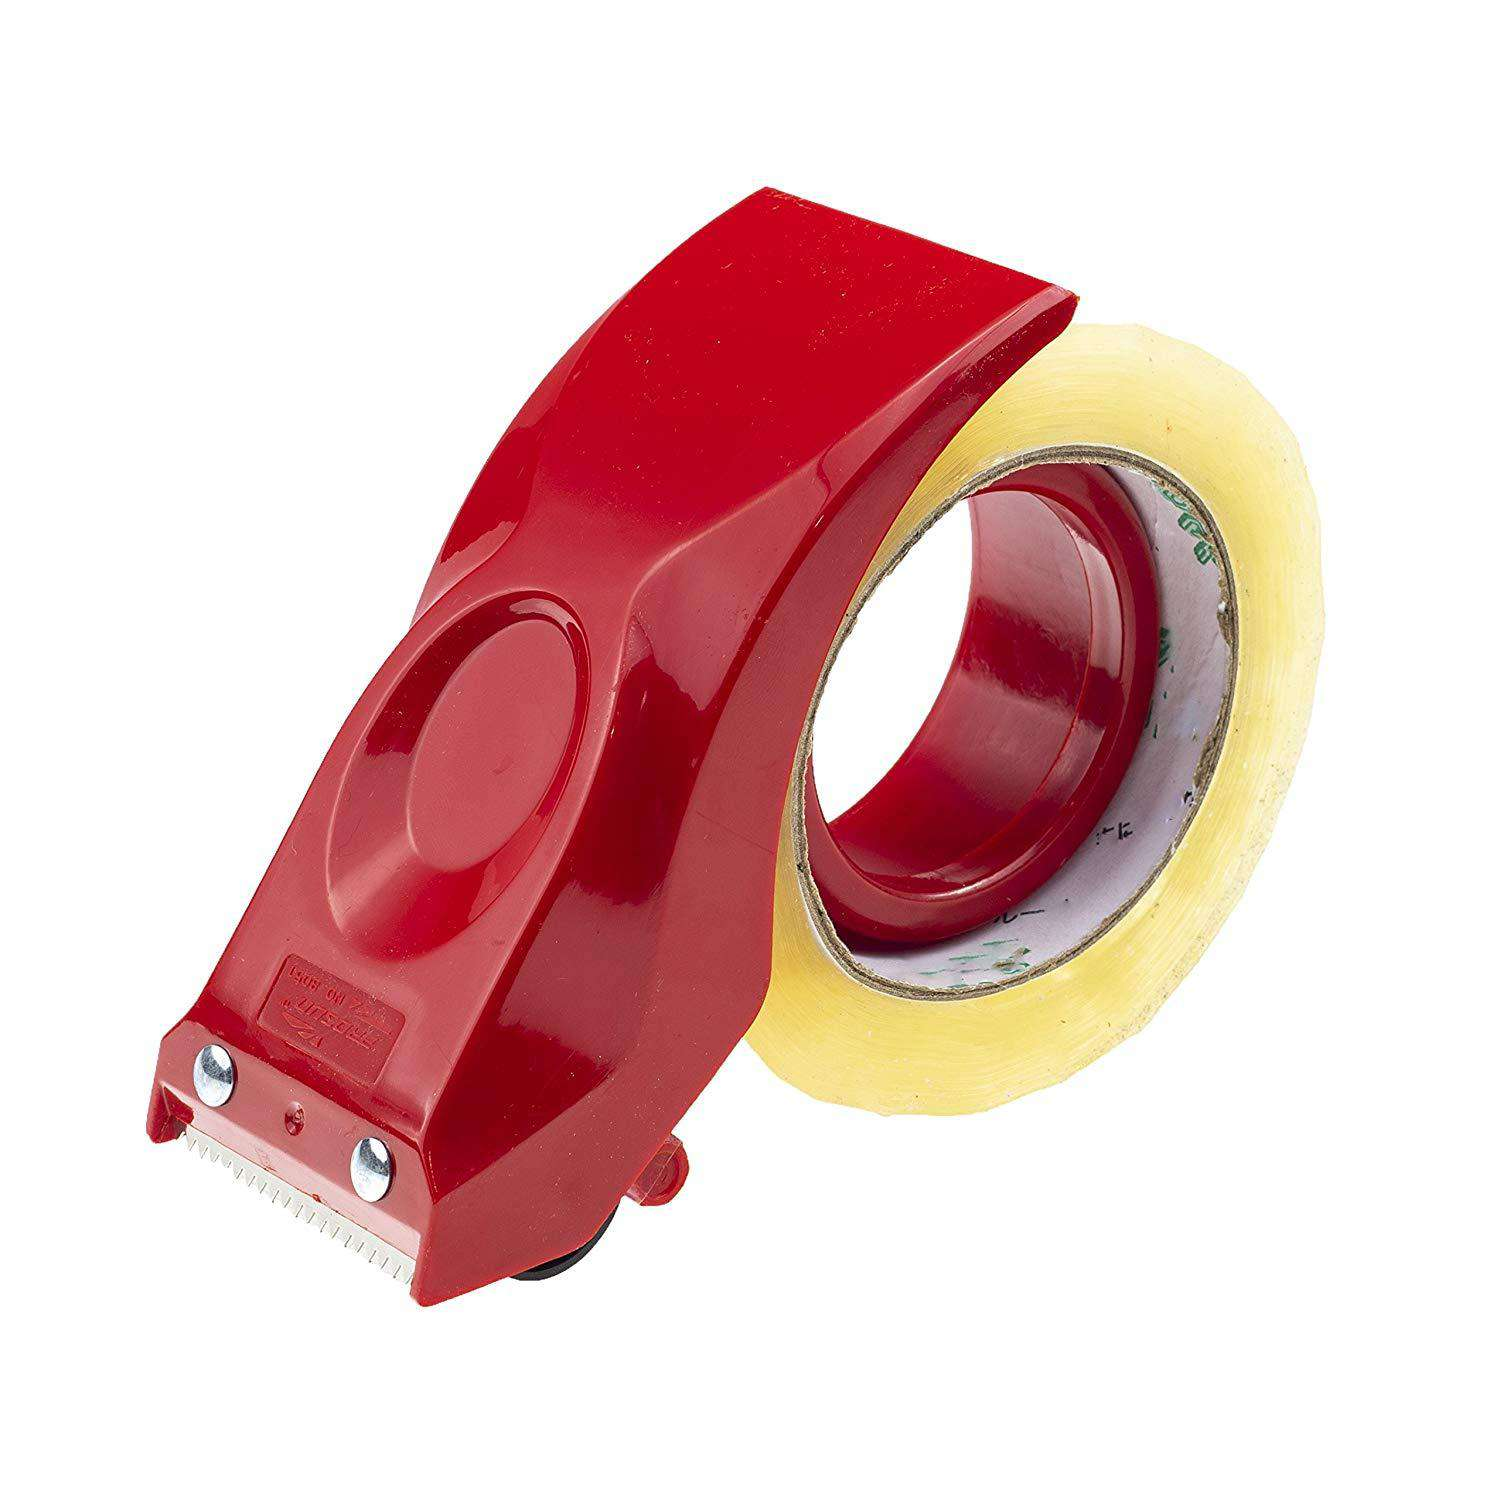 Packing Tape Dispenser Gun by Prosun, 2 Inch (50mm) Lightweight Ergonomic Industrial Heavy Handheld Duty Tape Cutter for Carton, Packaging and Box Sealing Sealer, Red